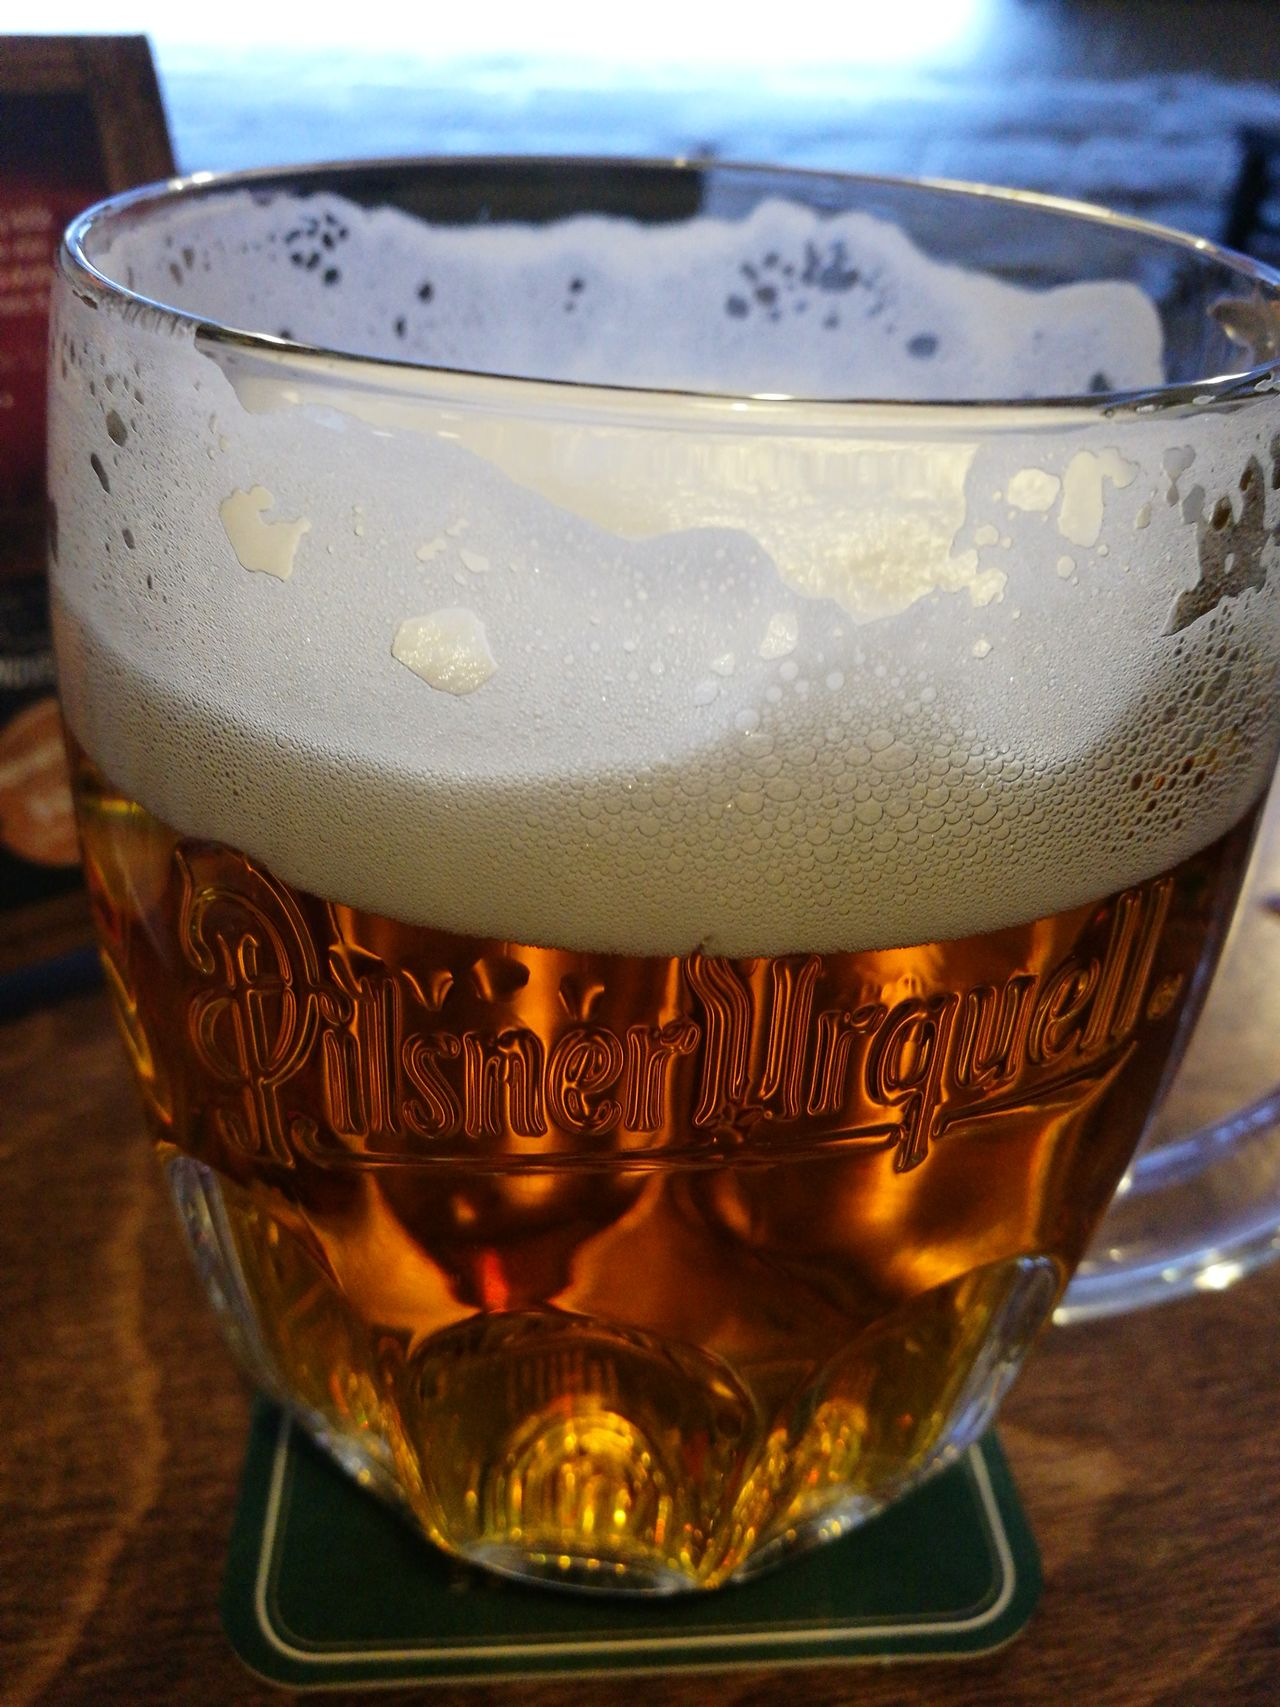 Drink Drinking Glass Alcohol Beer Glass Food And DrinkBeer Froth Czech Republic🇨🇿 Love Photography Good Night, Sweet Dreams Frothy Drink Refreshment Freedom Saturdaynight Cold Temperature Indoors  Relaxing ♥ Pilsner Urquell